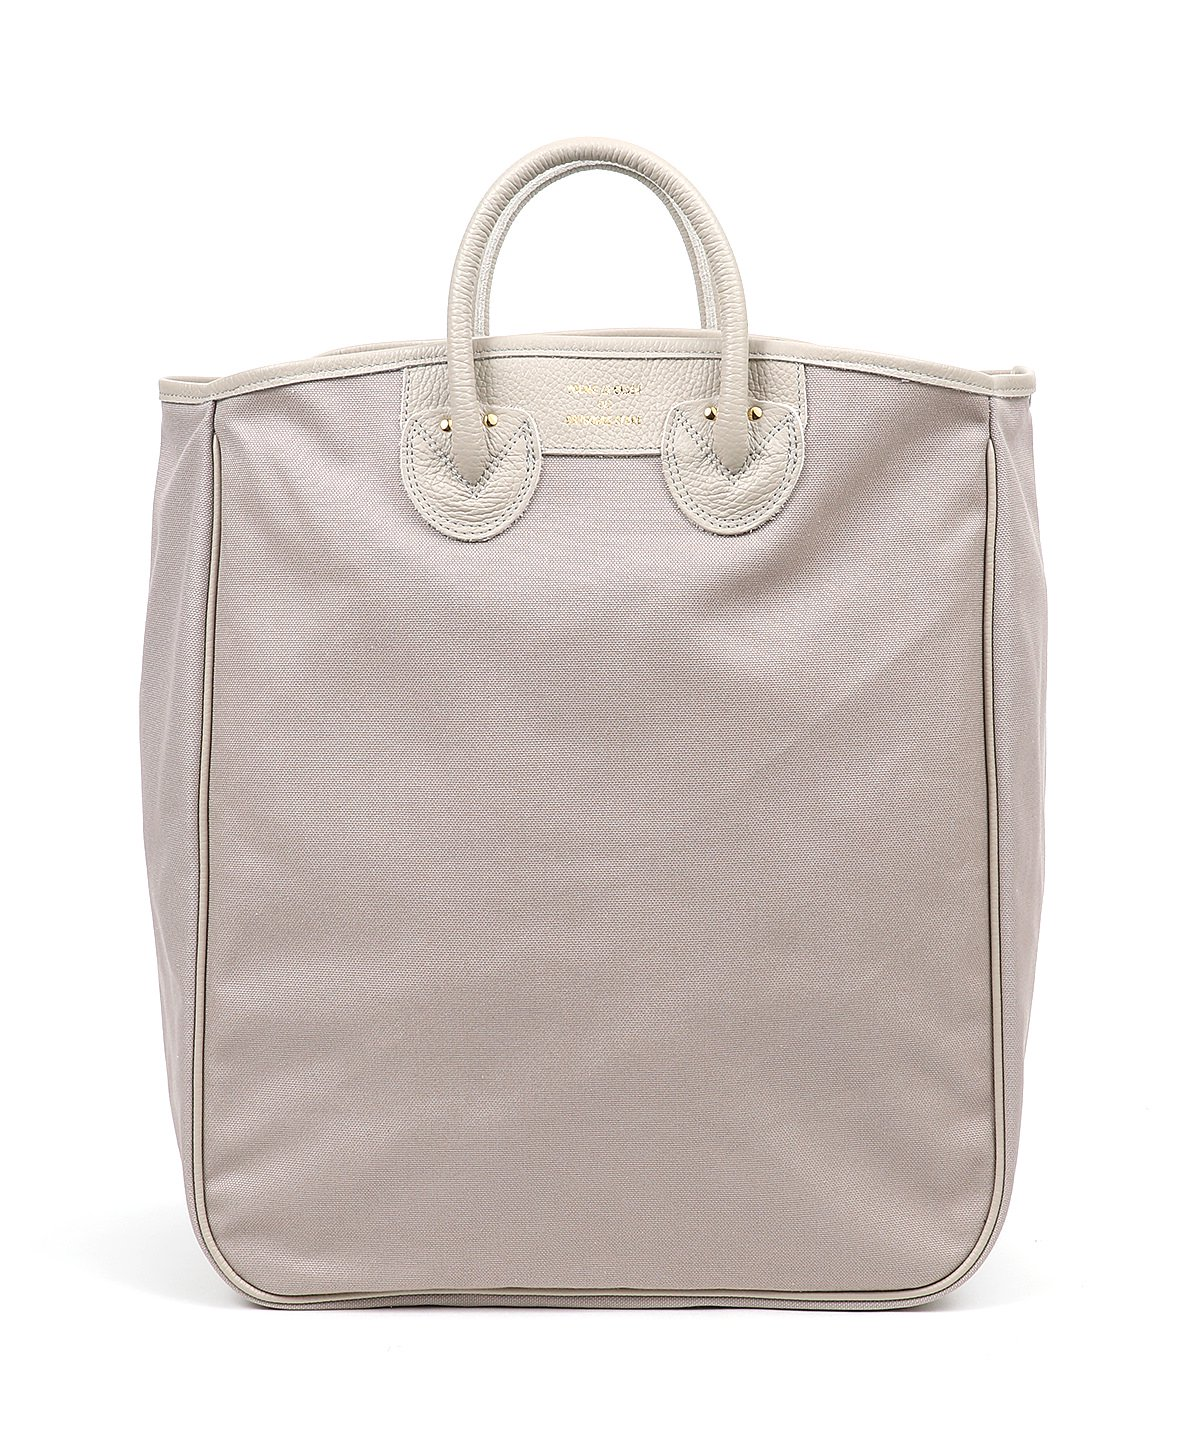 CANVAS CARRYALL TOTE L